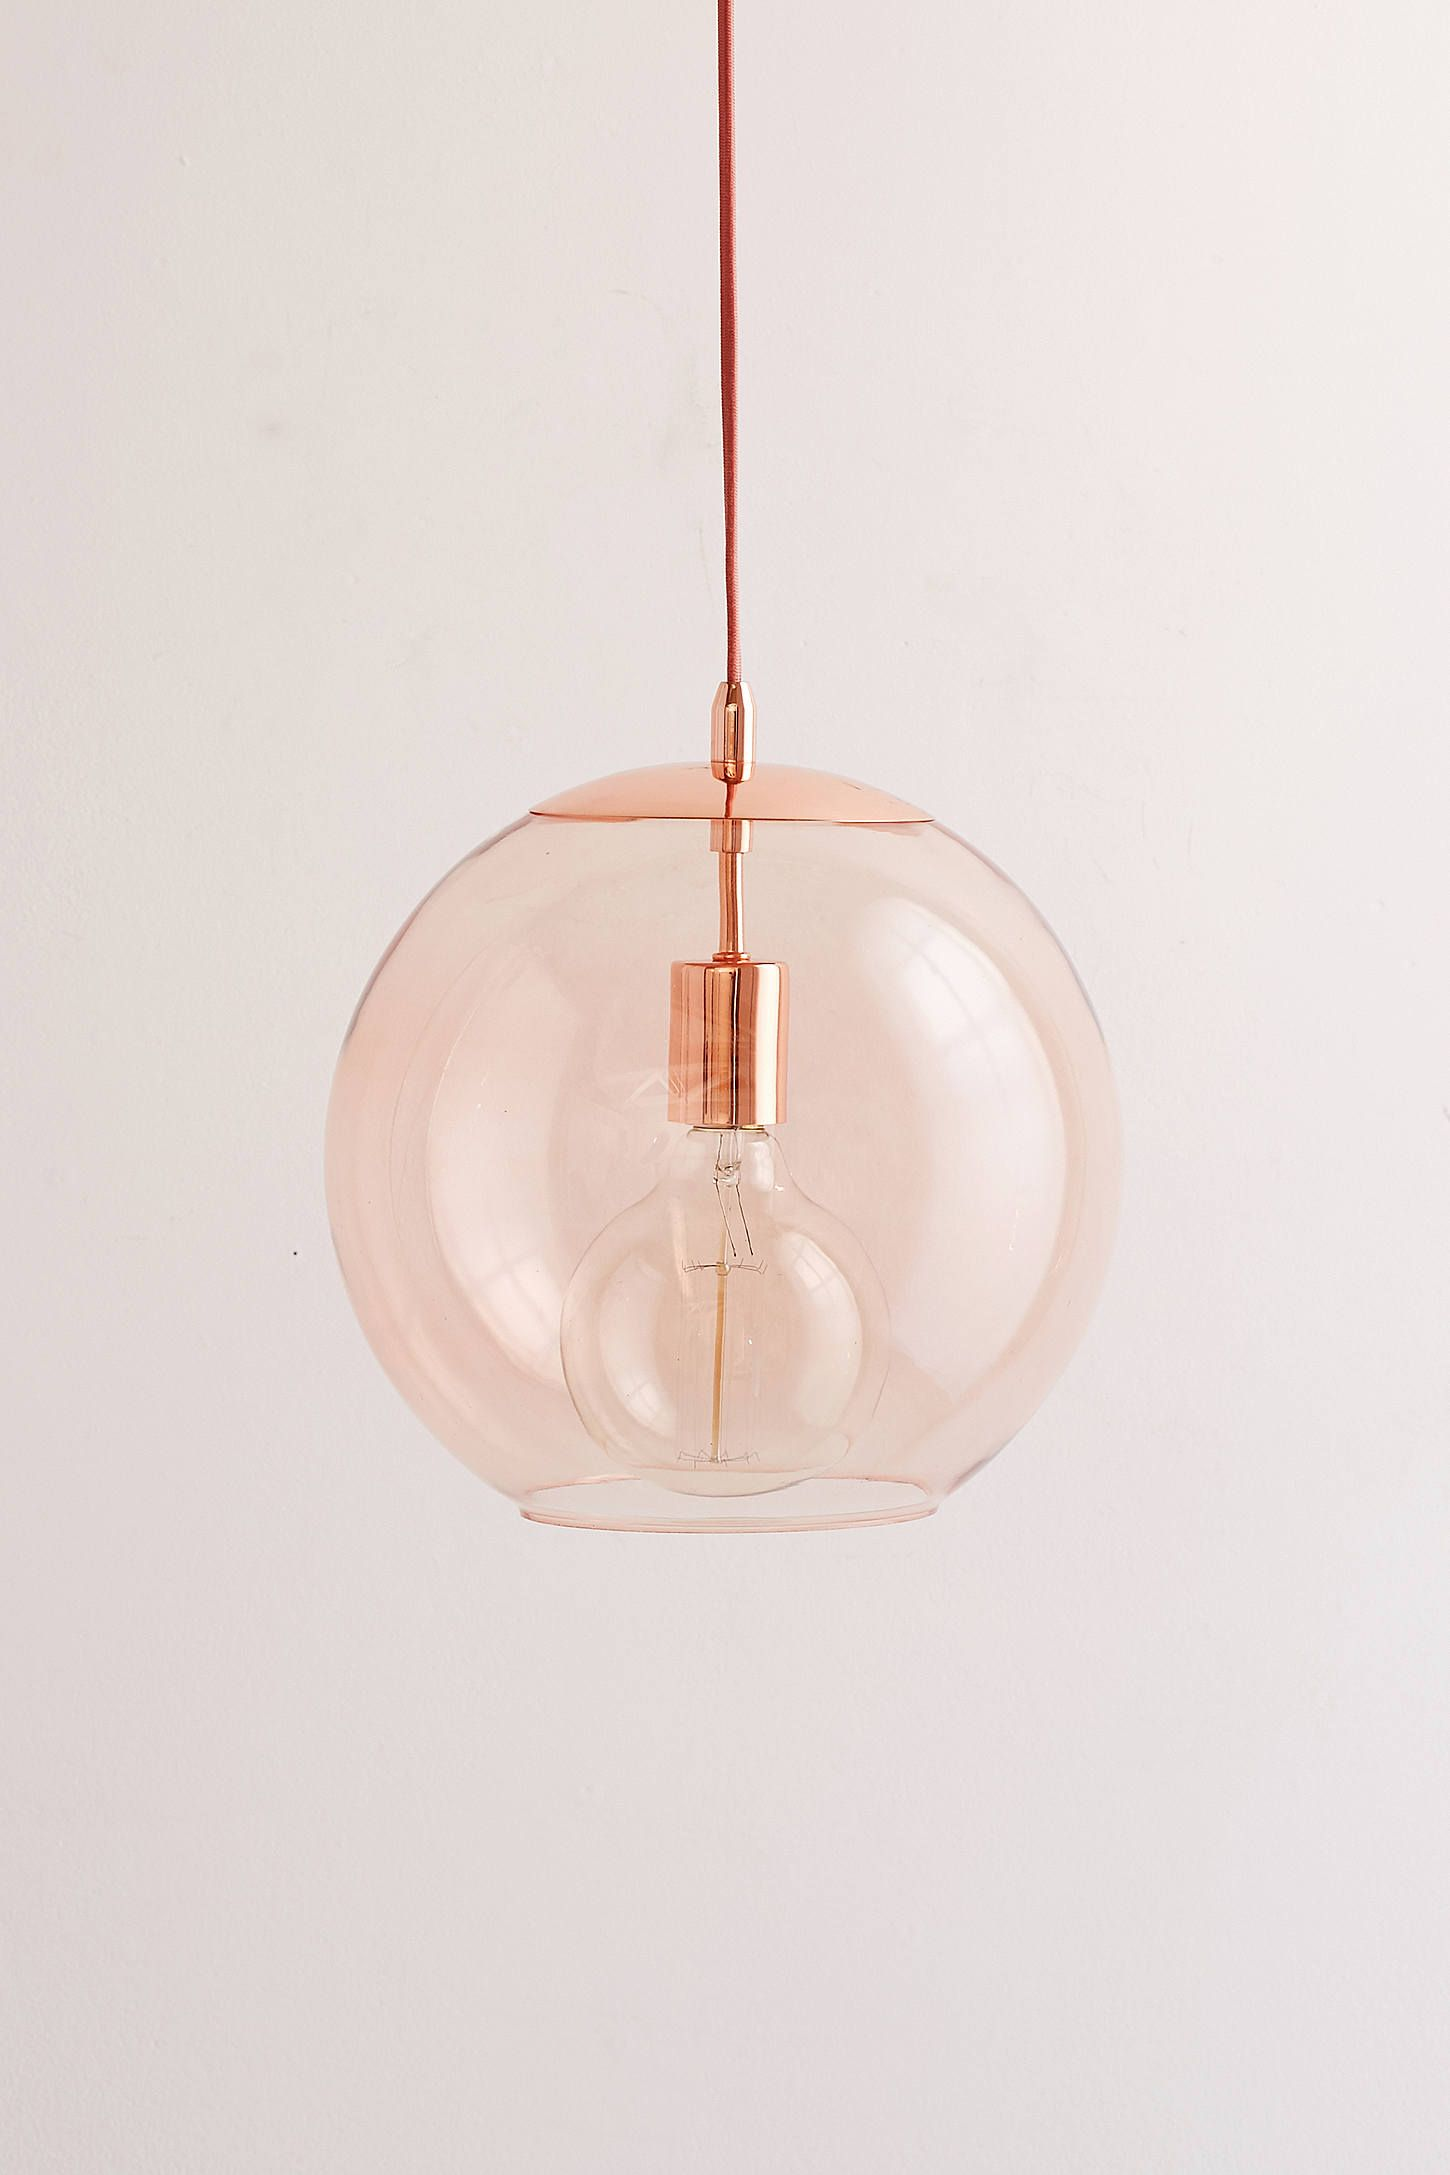 Emelle glass globe pendant light lighting pinterest globe shop emelle glass globe pendant light at urban outfitters today we carry all the latest styles colors and brands for you to choose from right here aloadofball Images